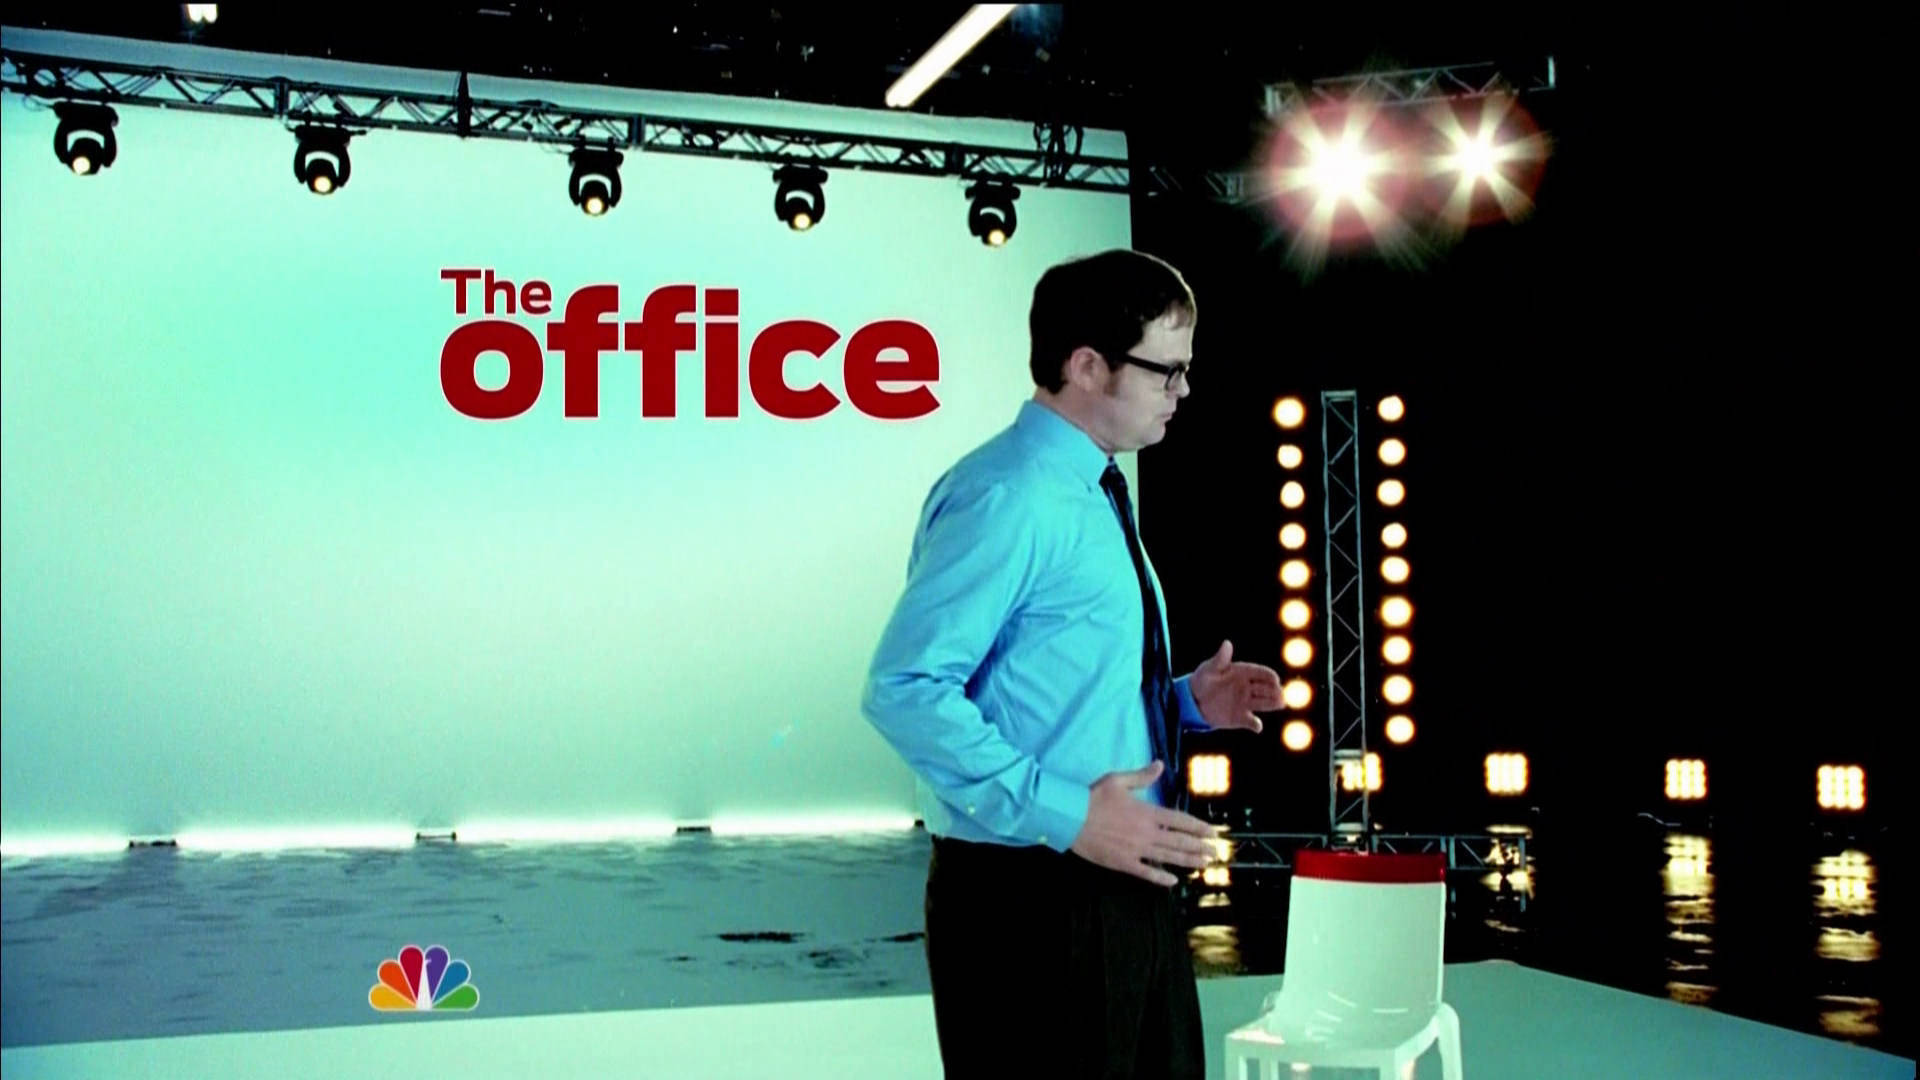 the promotion the office